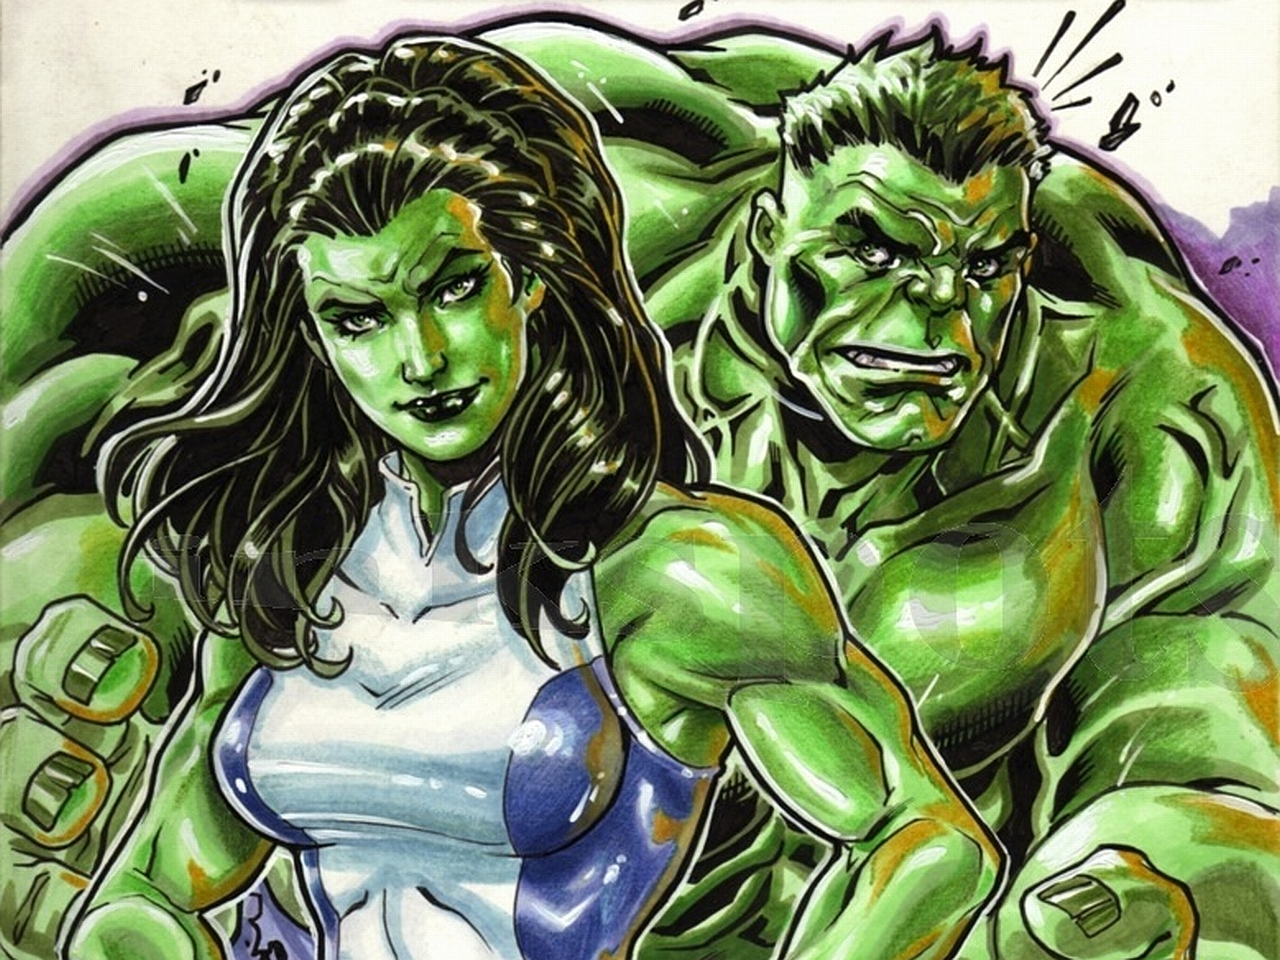 She Hulk Computer Wallpapers Desktop Backgrounds 1280x960